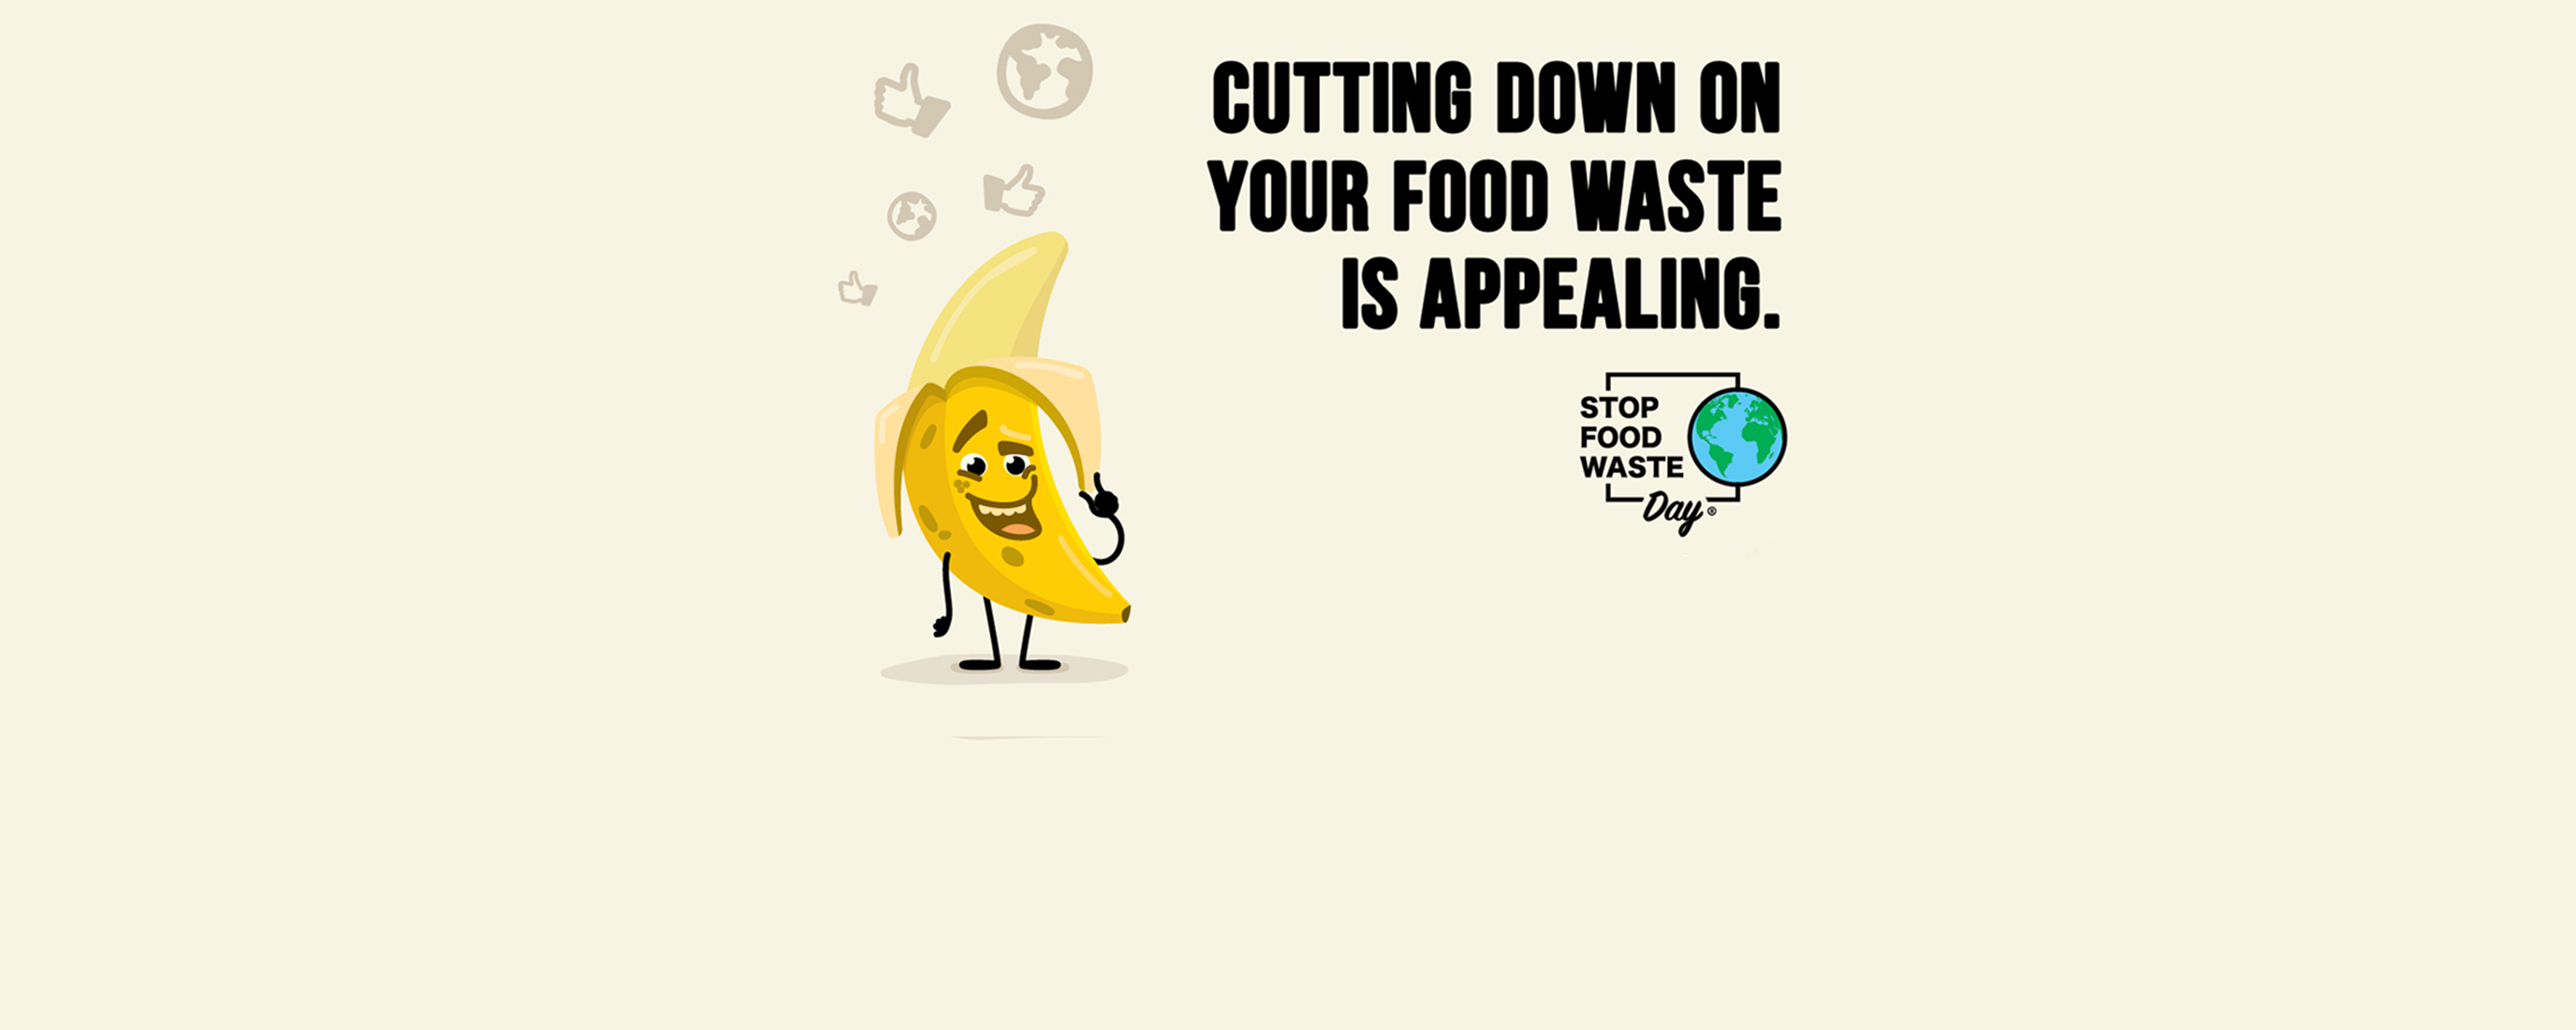 cutting down on food waste is appealing